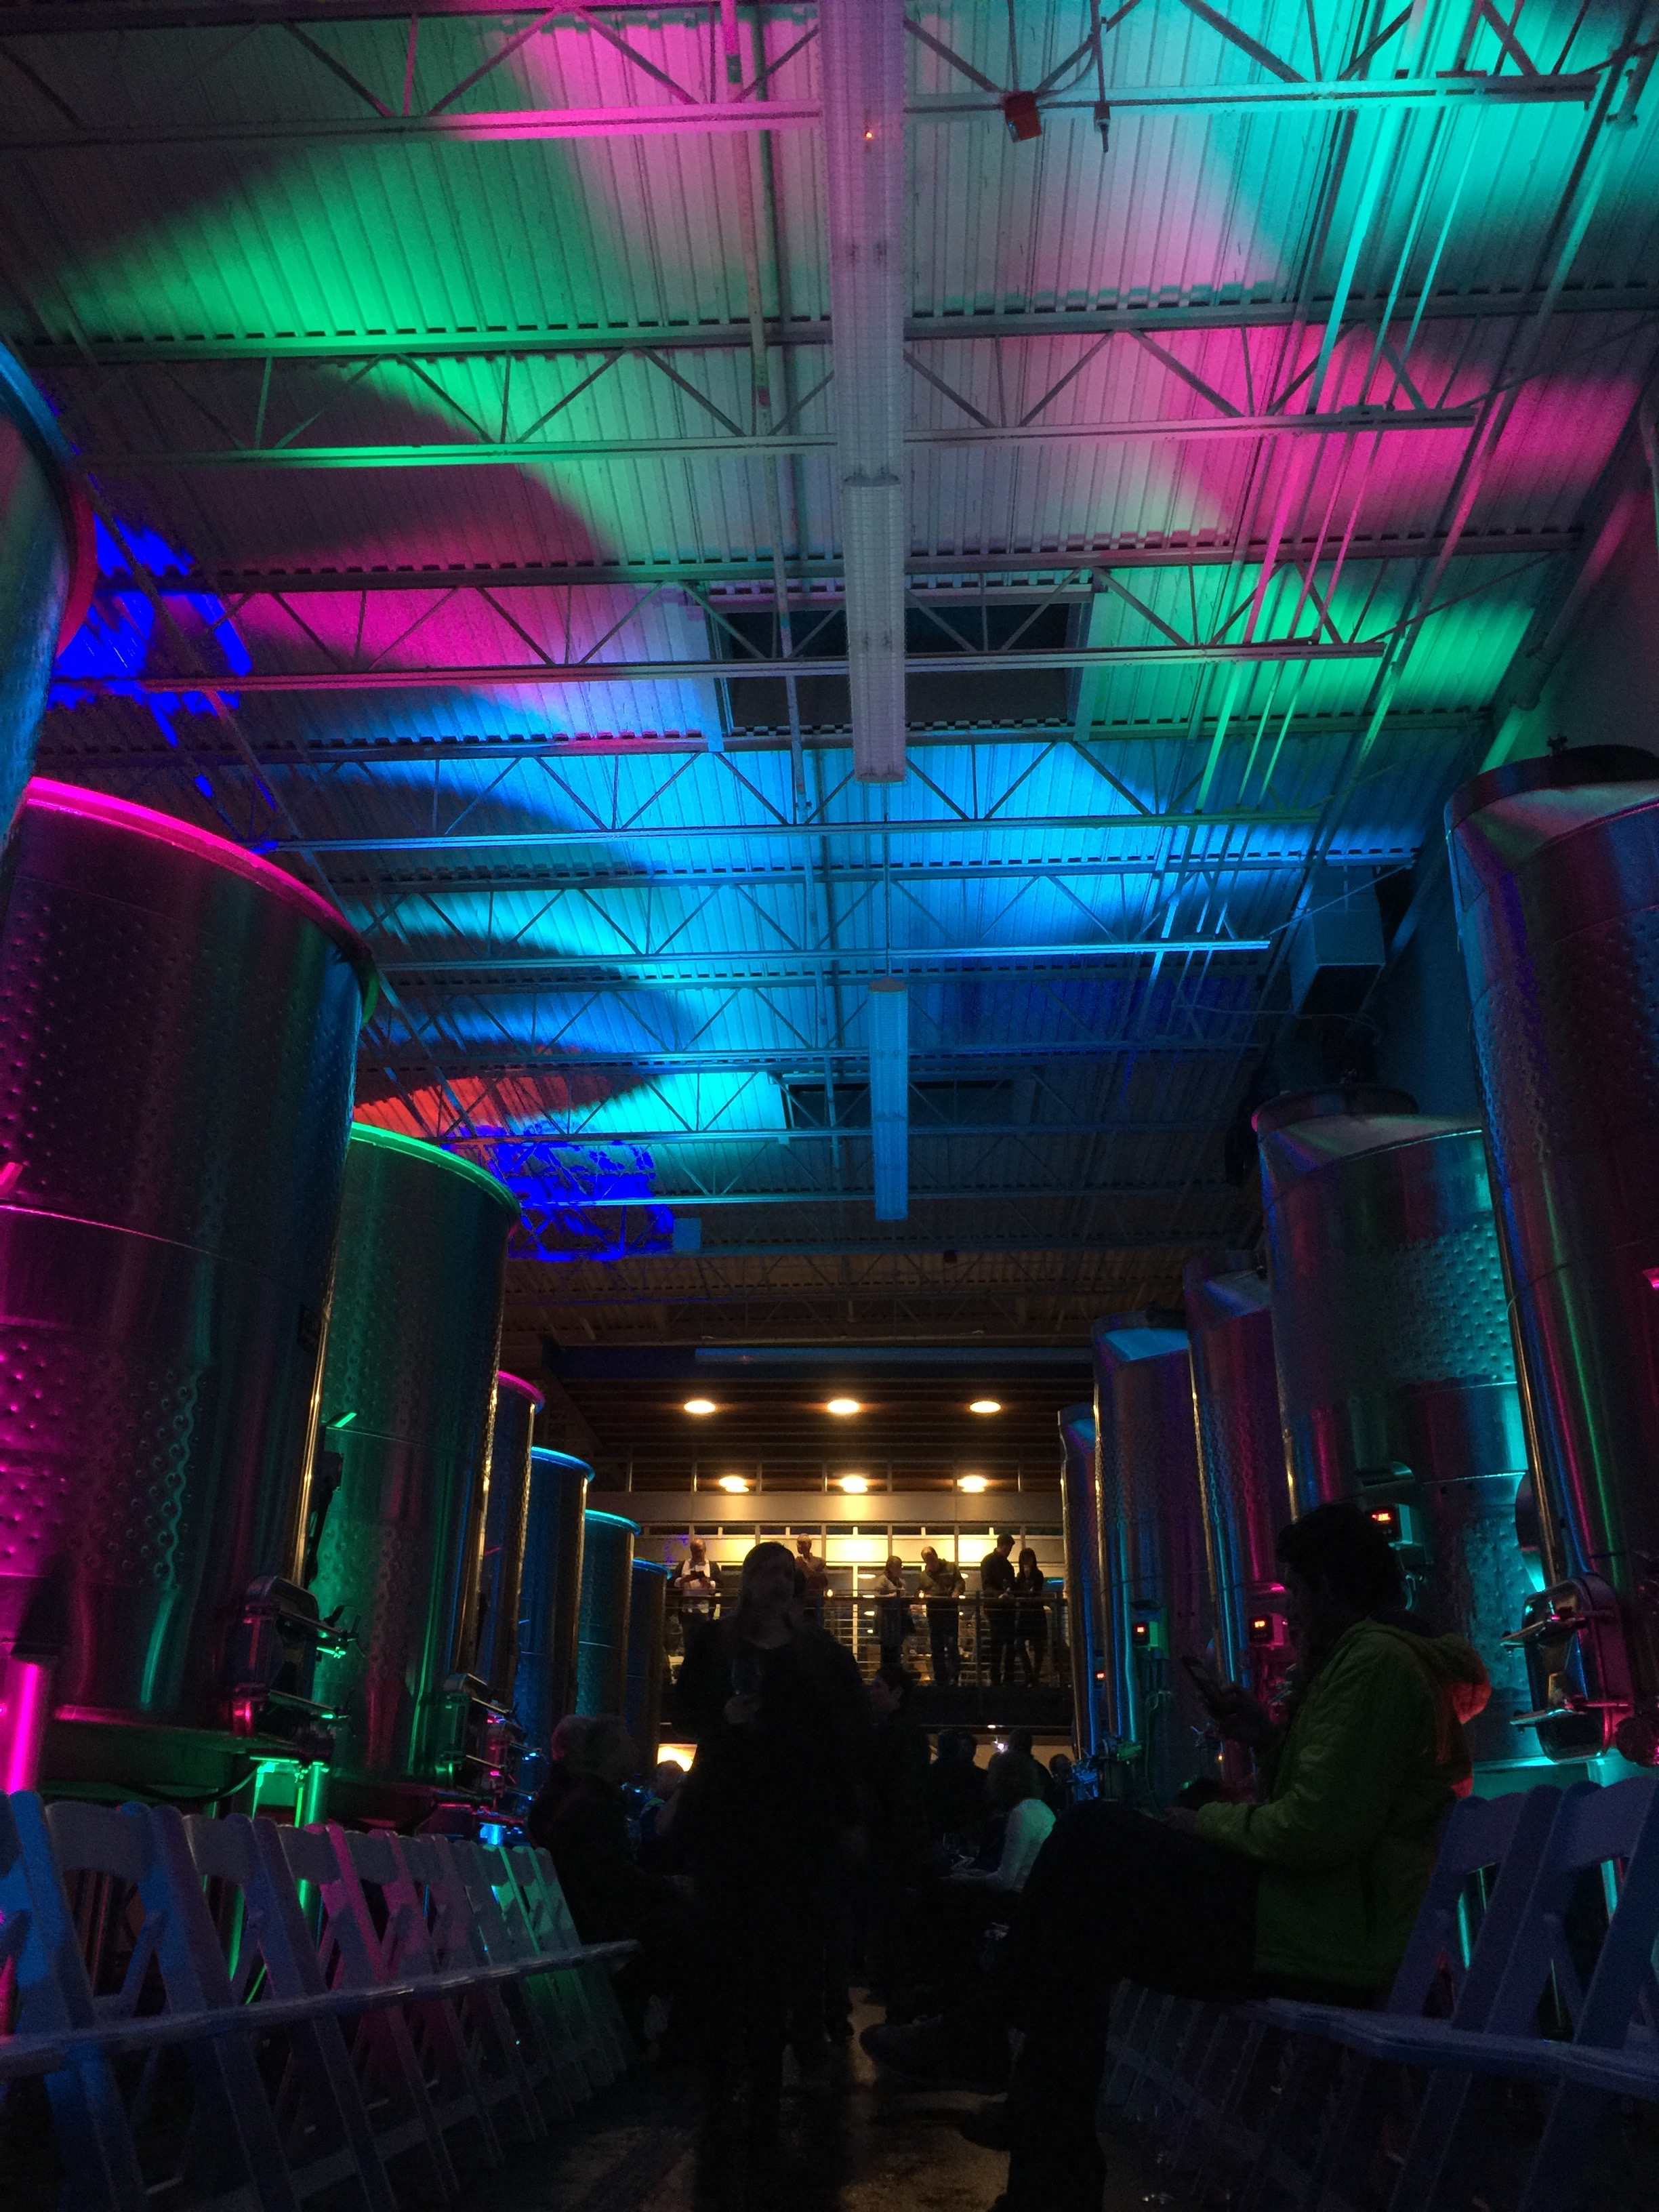 Uplights with custom colors @   Novelty Hill - Januik Winery   (Woodinville, WA)